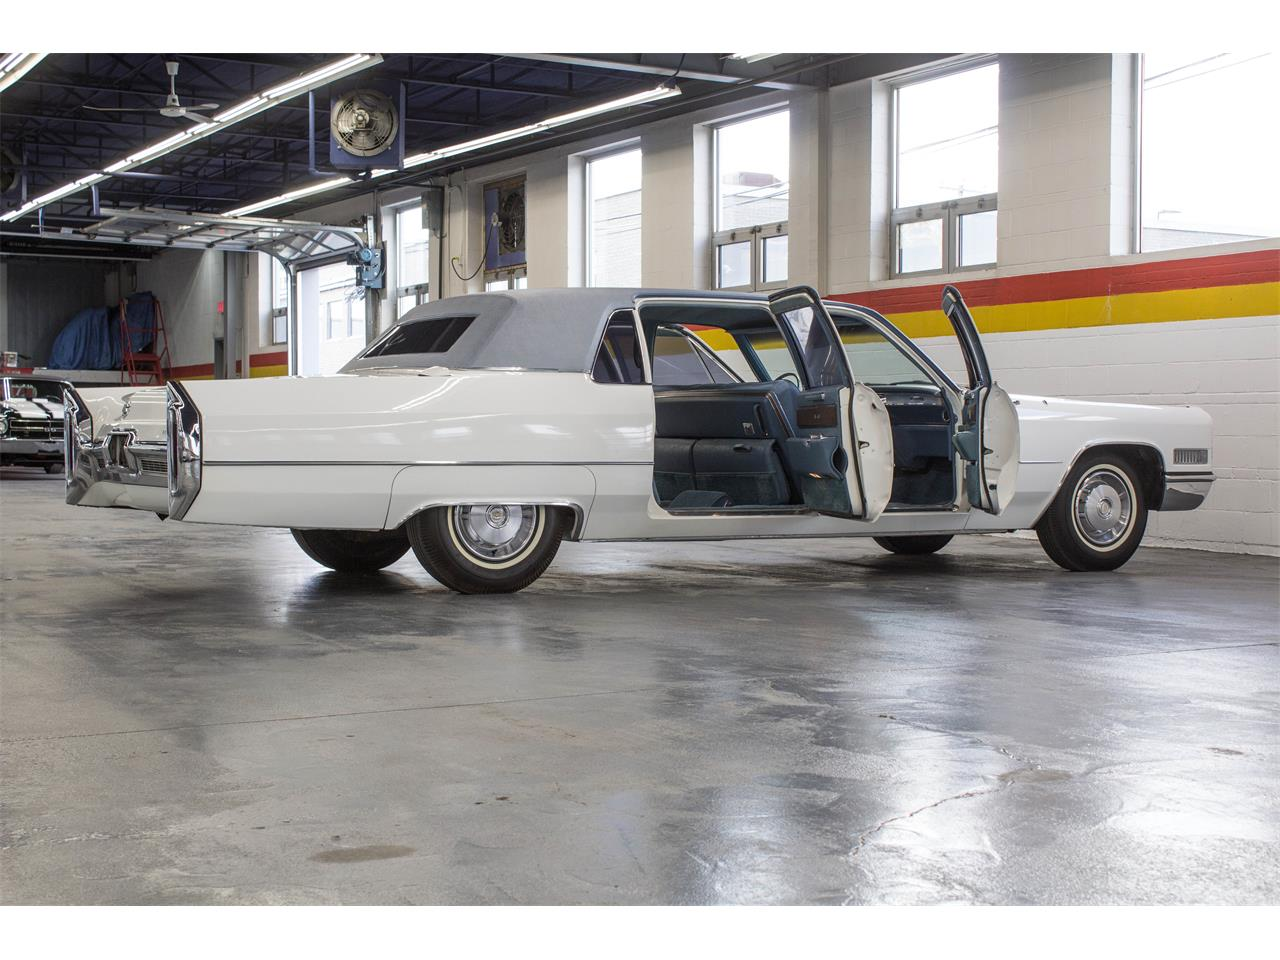 Large Picture of '66 Cadillac Fleetwood Limousine located in Montreal Quebec - NKXQ